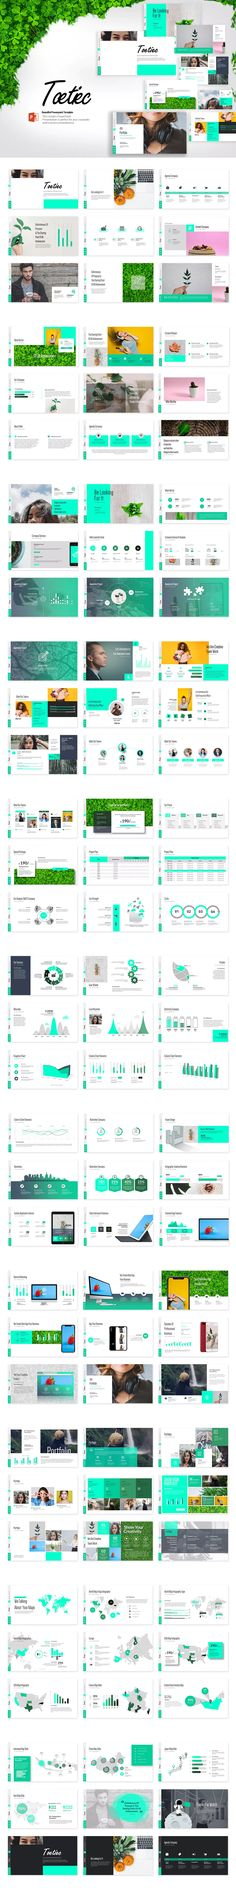 Toetiec Powerpoint Presentation Template #unlimiteddownloads